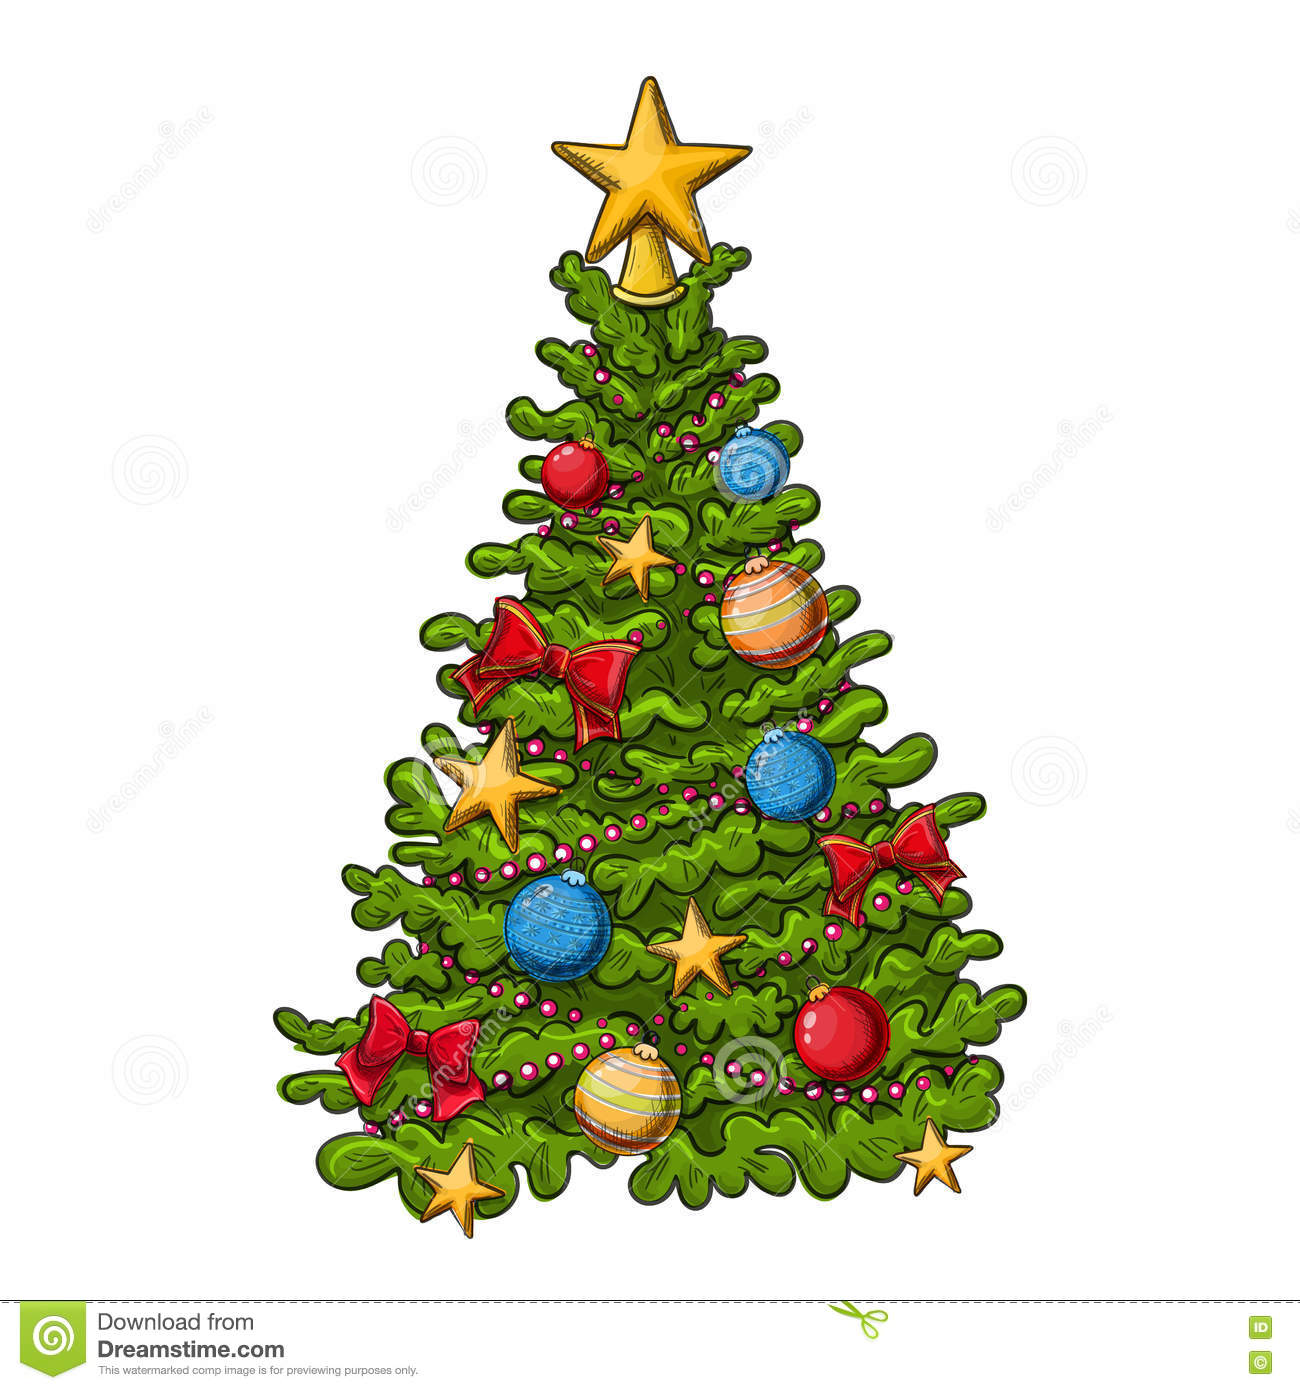 Colorful Christmas Ornaments Drawings.Christmas Tree Drawing Stock Vector Illustration Of White